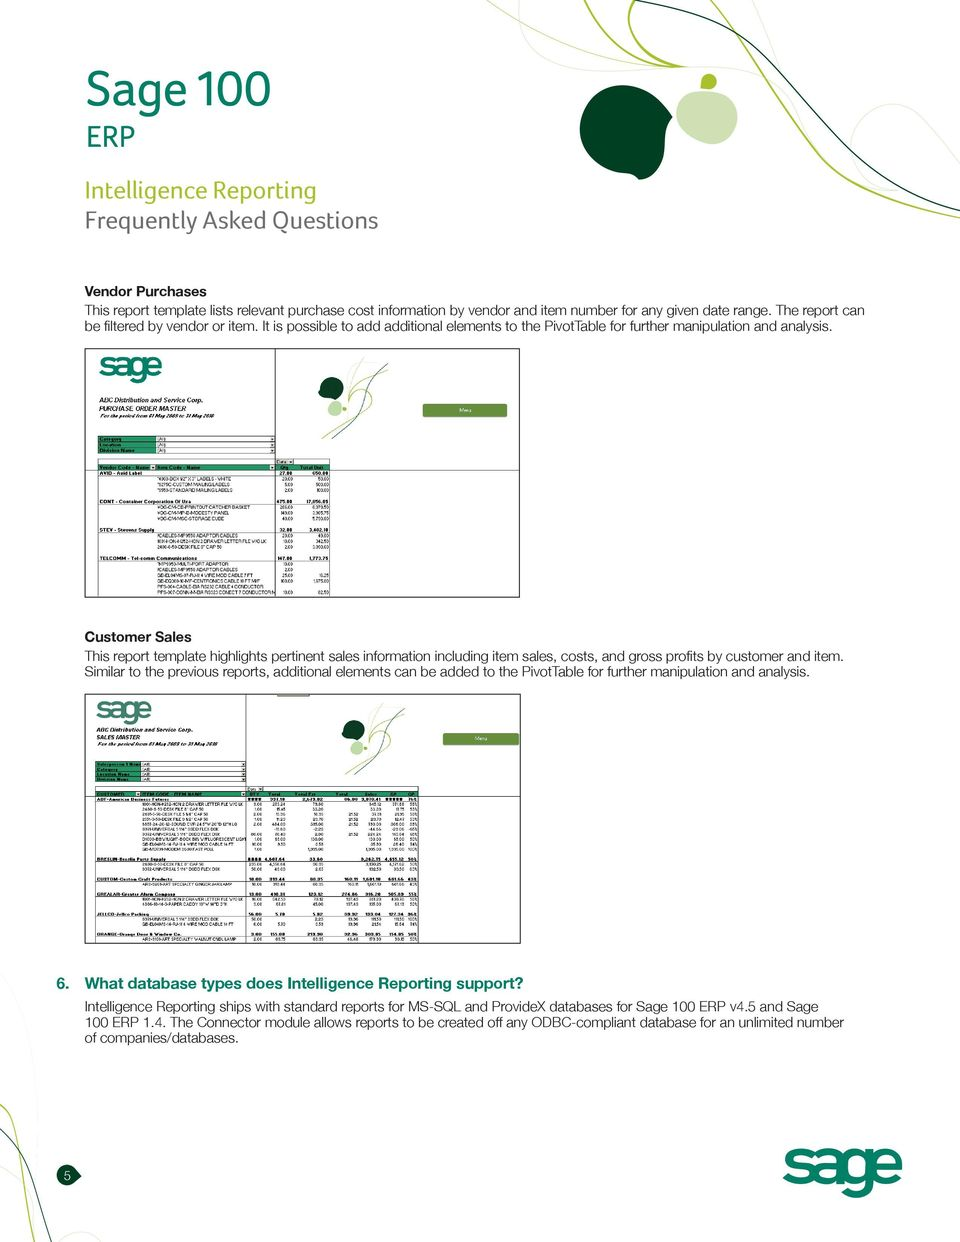 Customer Sales This report template highlights pertinent sales information including item sales, costs, and gross profits by customer and item.